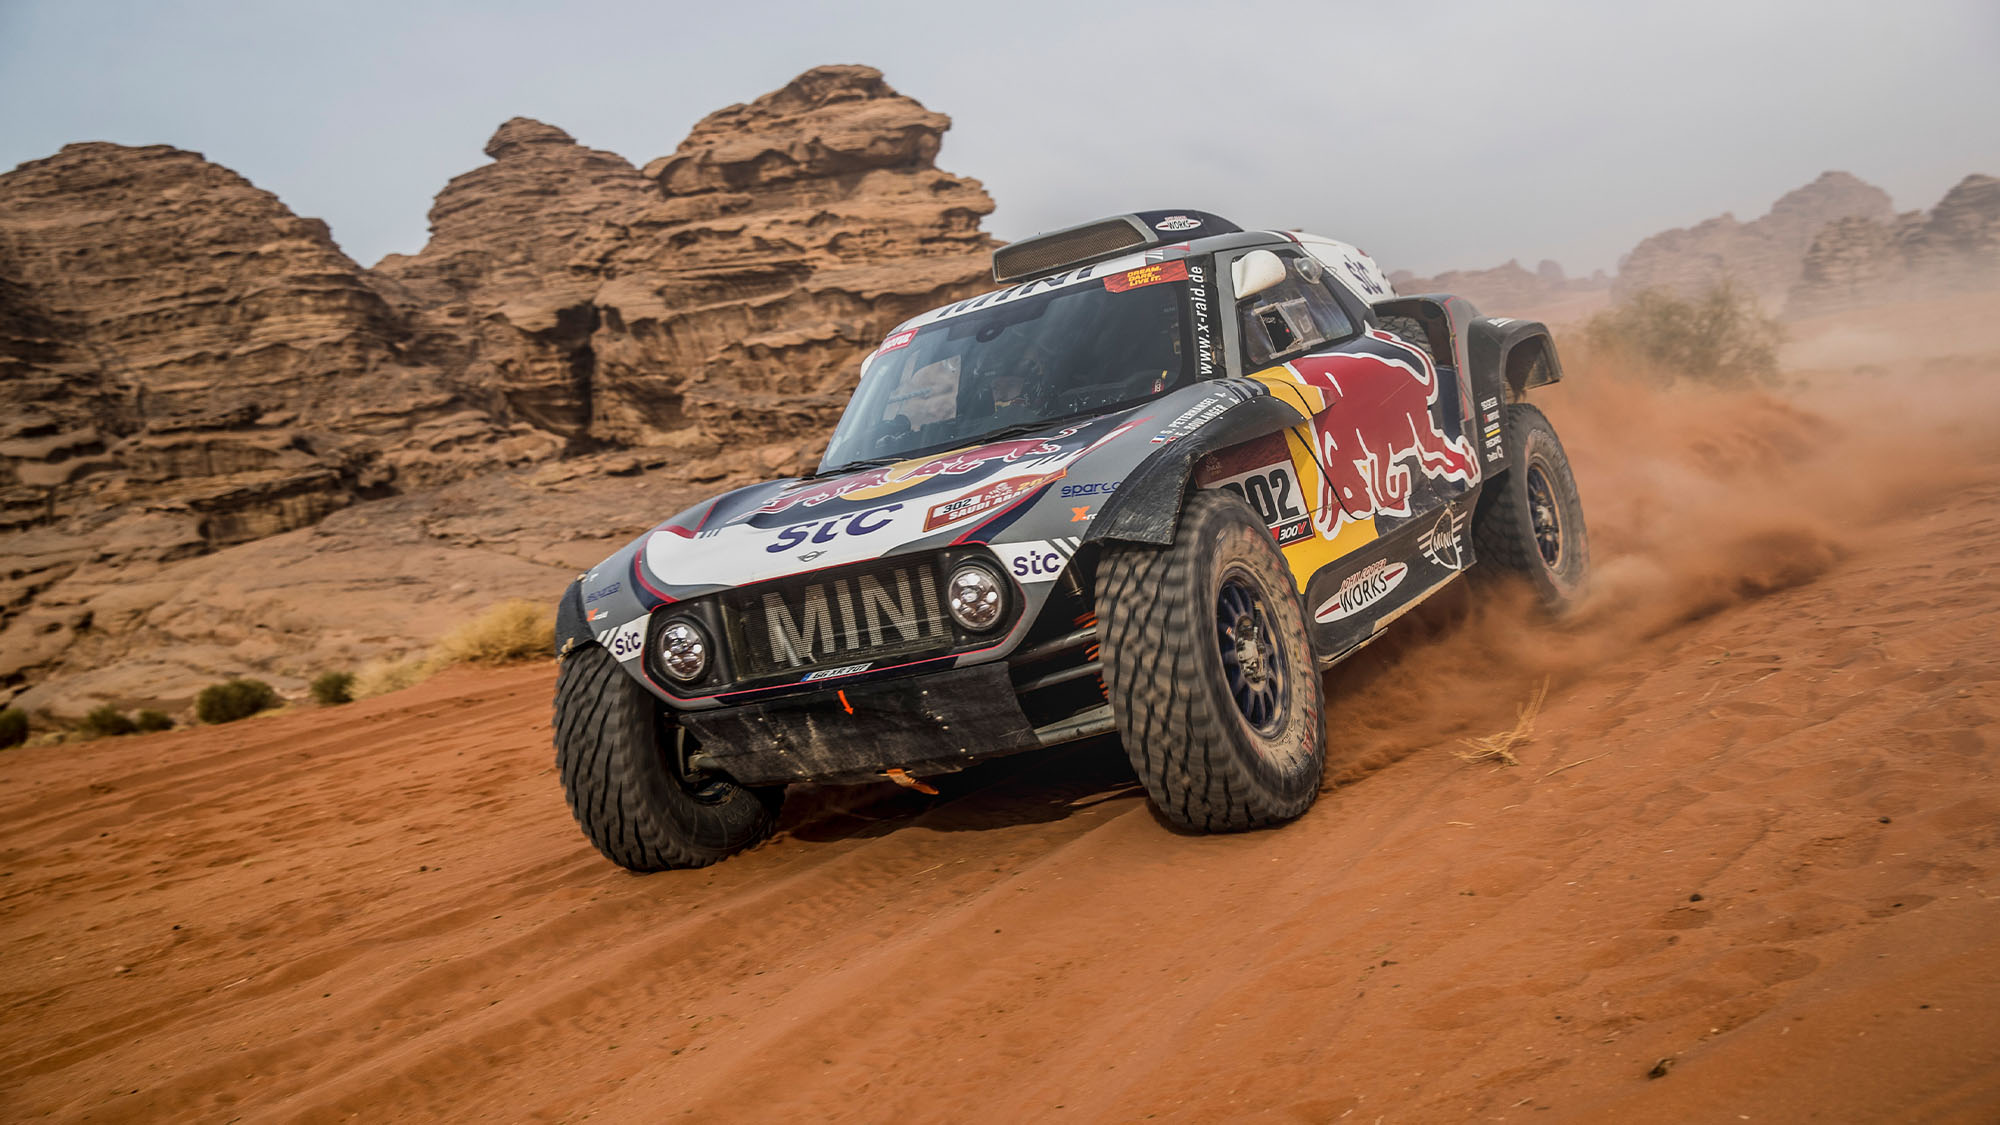 Stephane Peterhansel and Edouard Boulanger in the Mini Buggy of the X-Raid Mini JCW Team races during the 10th stage of the Dakar 2021 between Neom and Al-ʿUla, in Saudi Arabia on January 13, 2021.